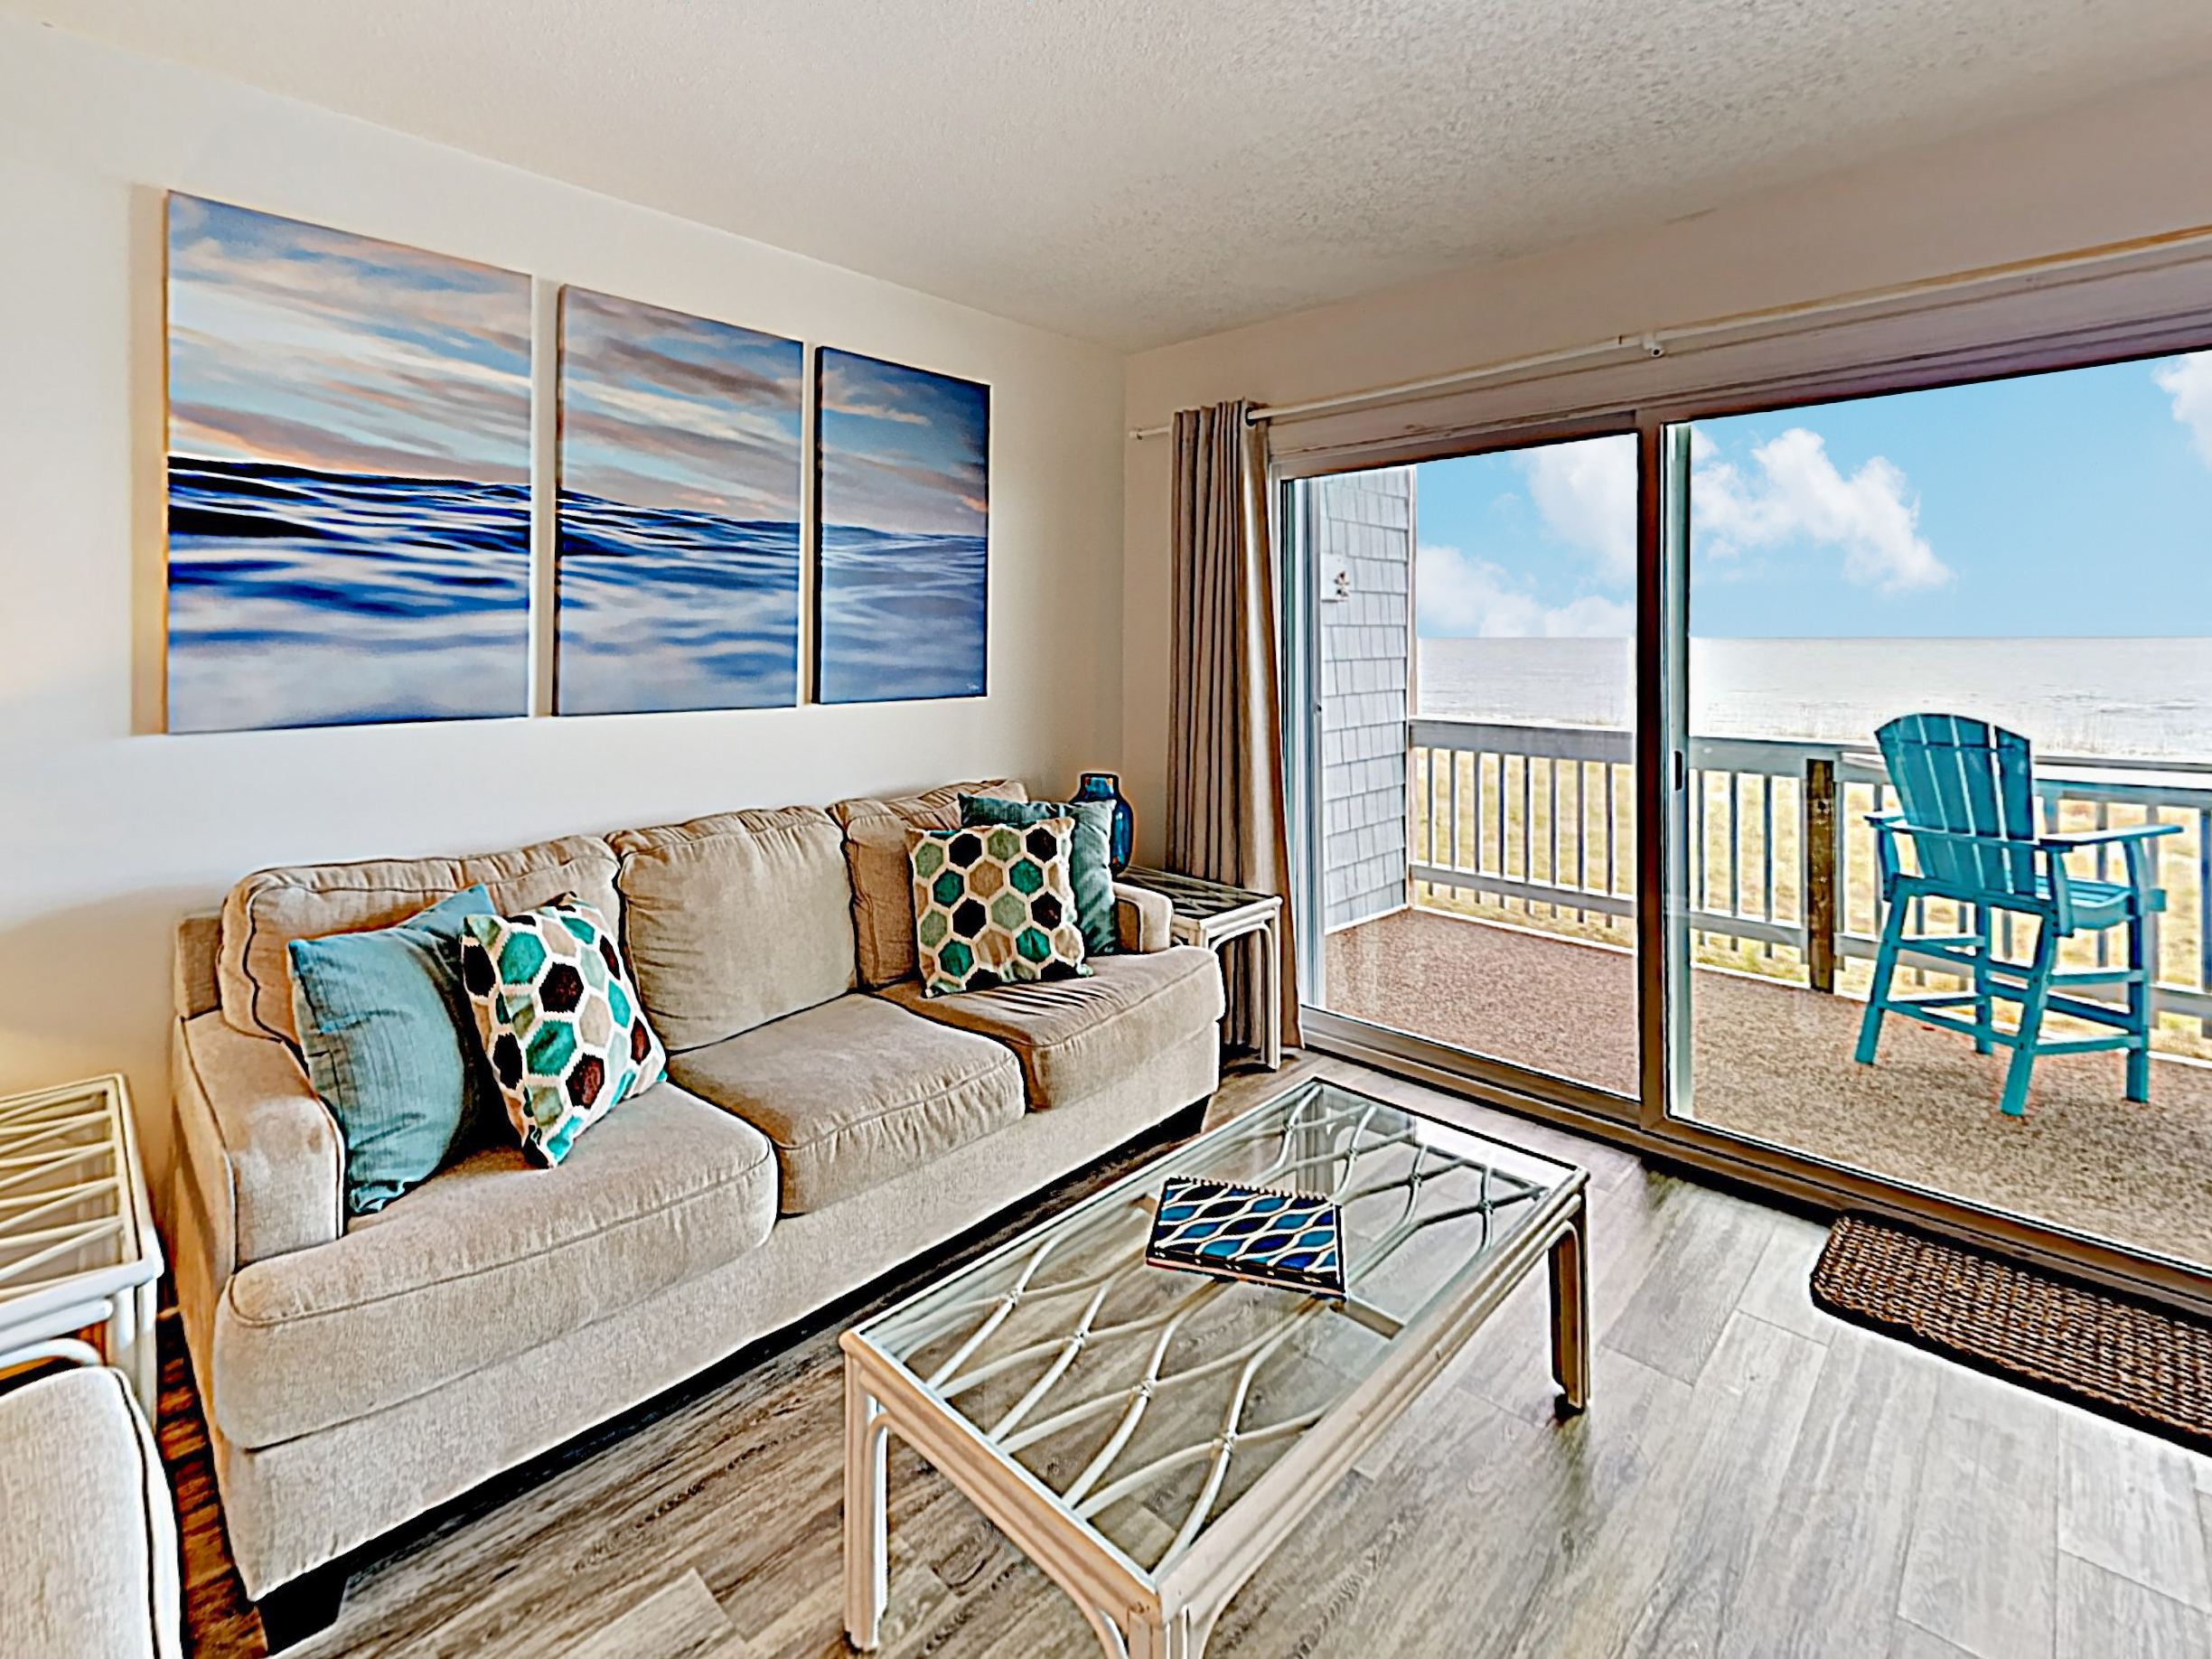 Carolina Beach NC Vacation Rental Welcome to Sands